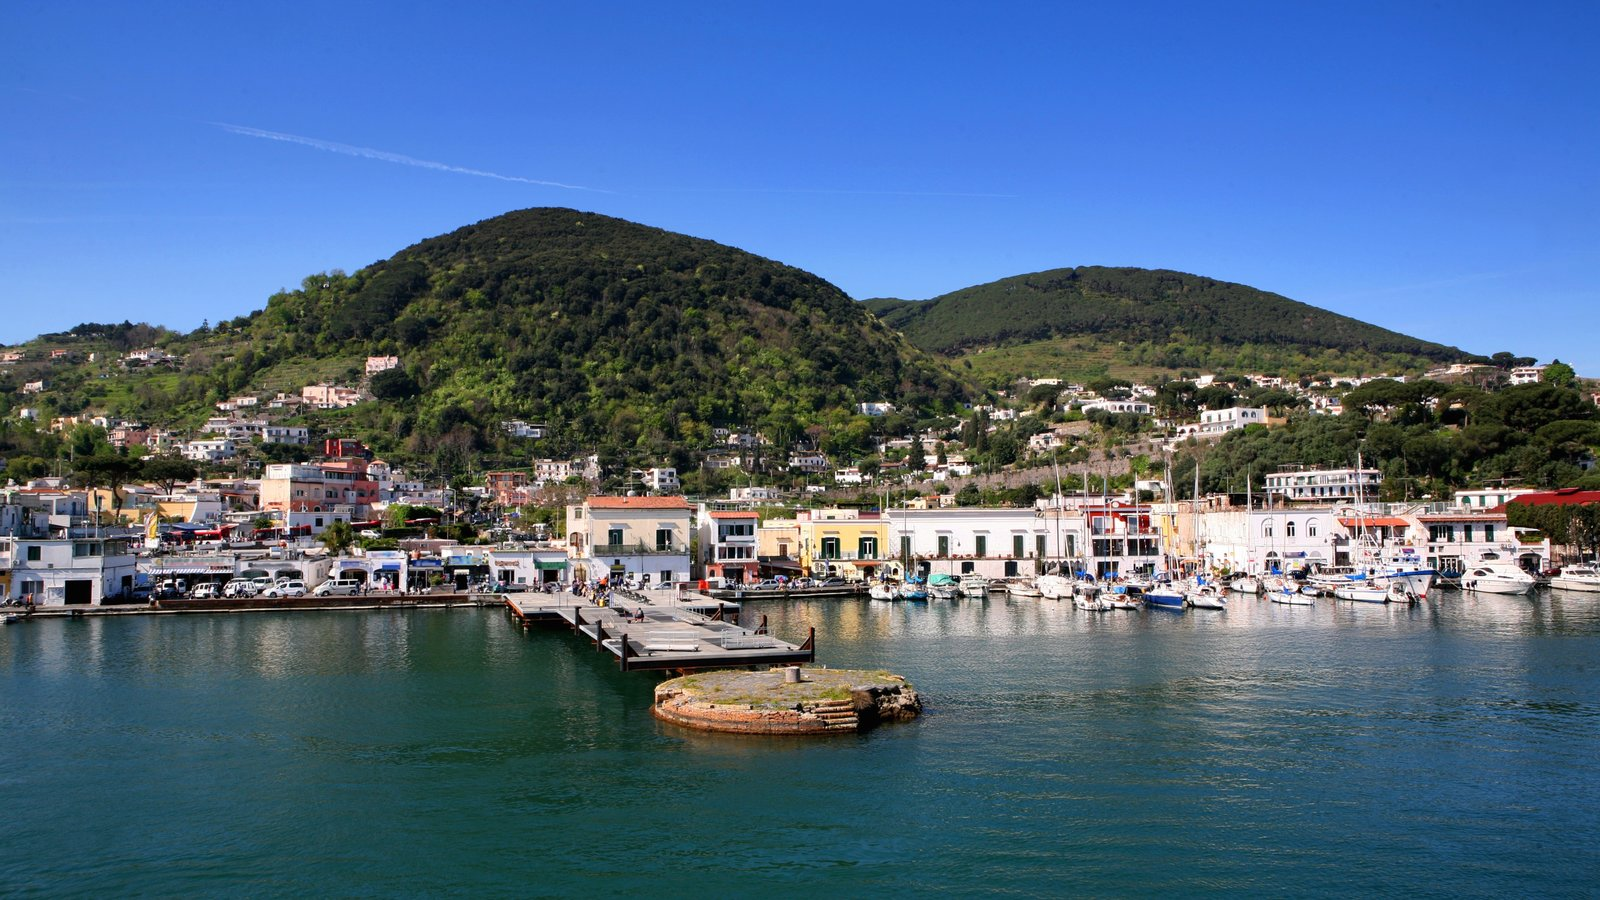 Ischia which includes a marina and a coastal town